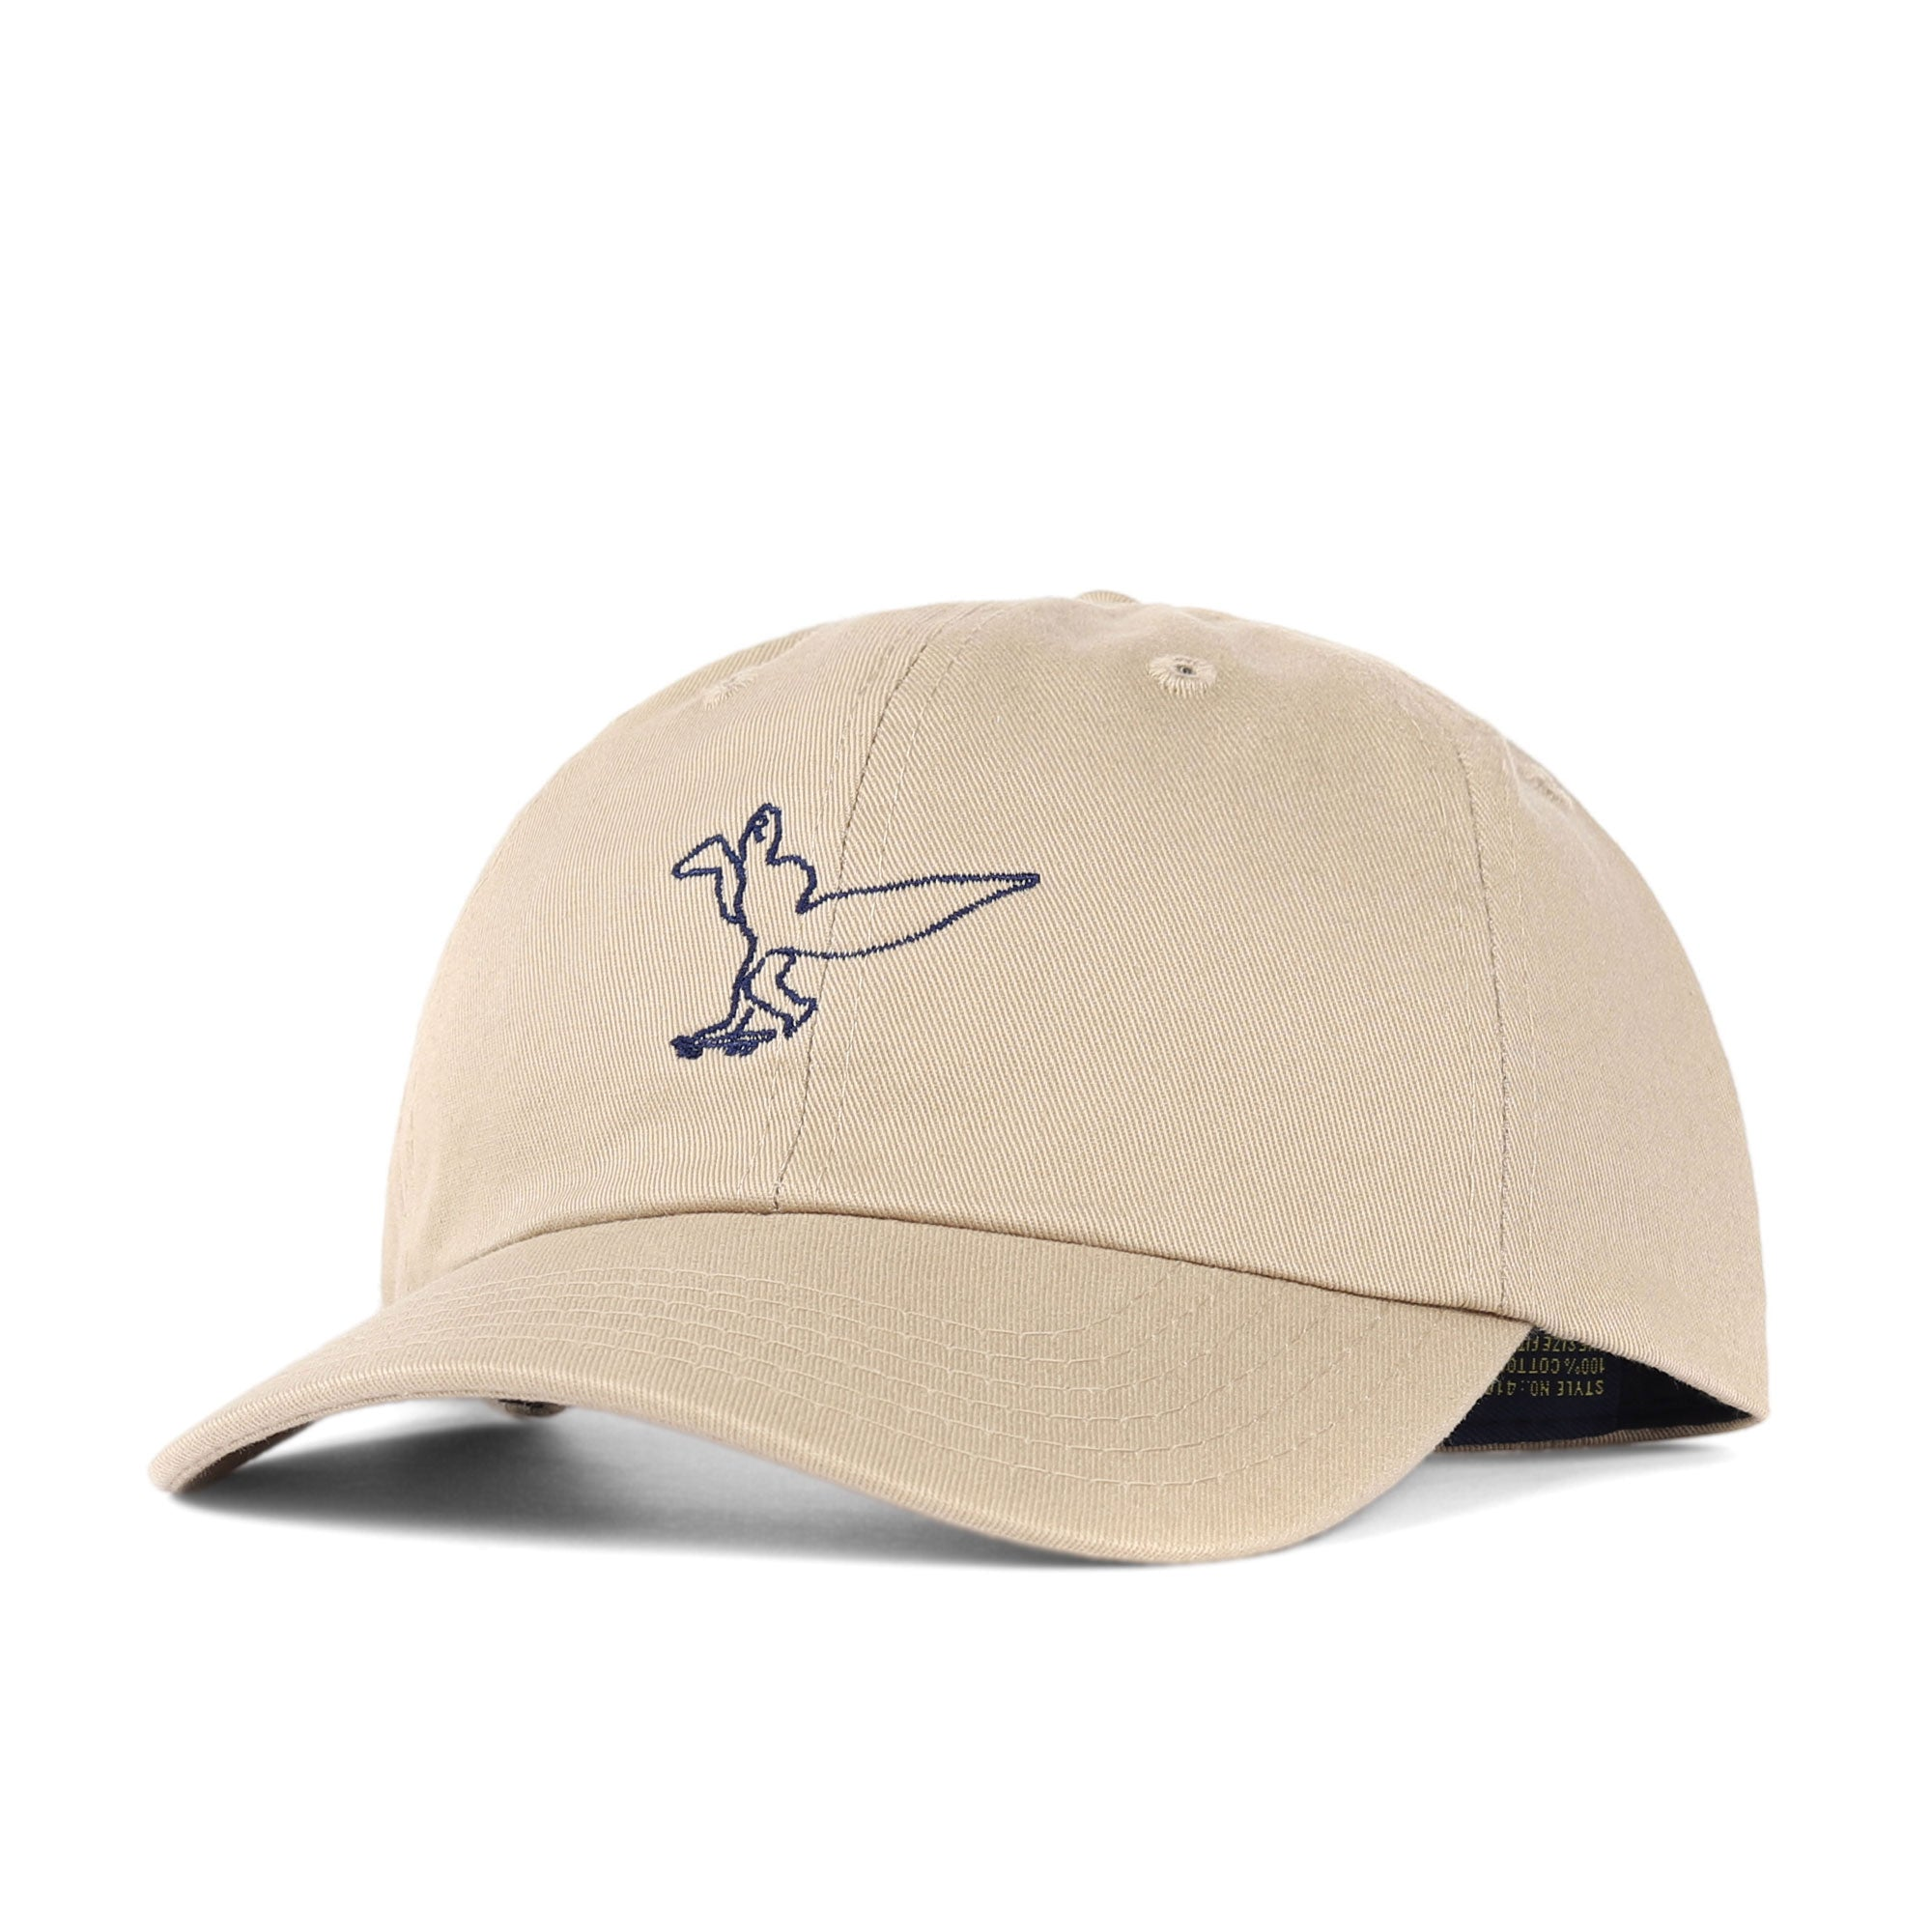 Beyond Gonz Cap Product Photo #1